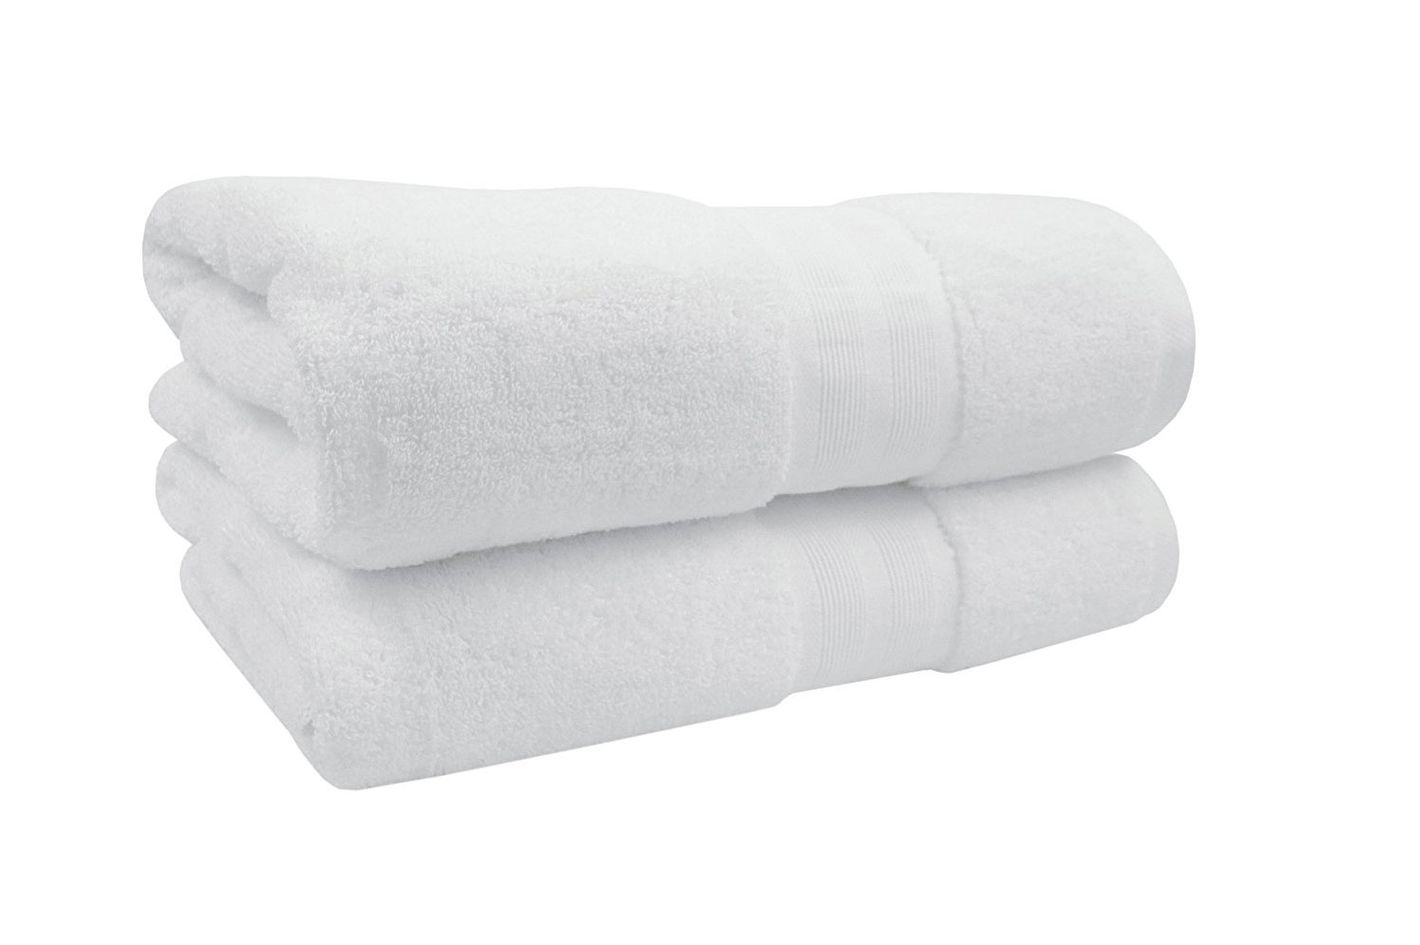 10 Best Bath Towels Luxury Decorative Affordable Towels